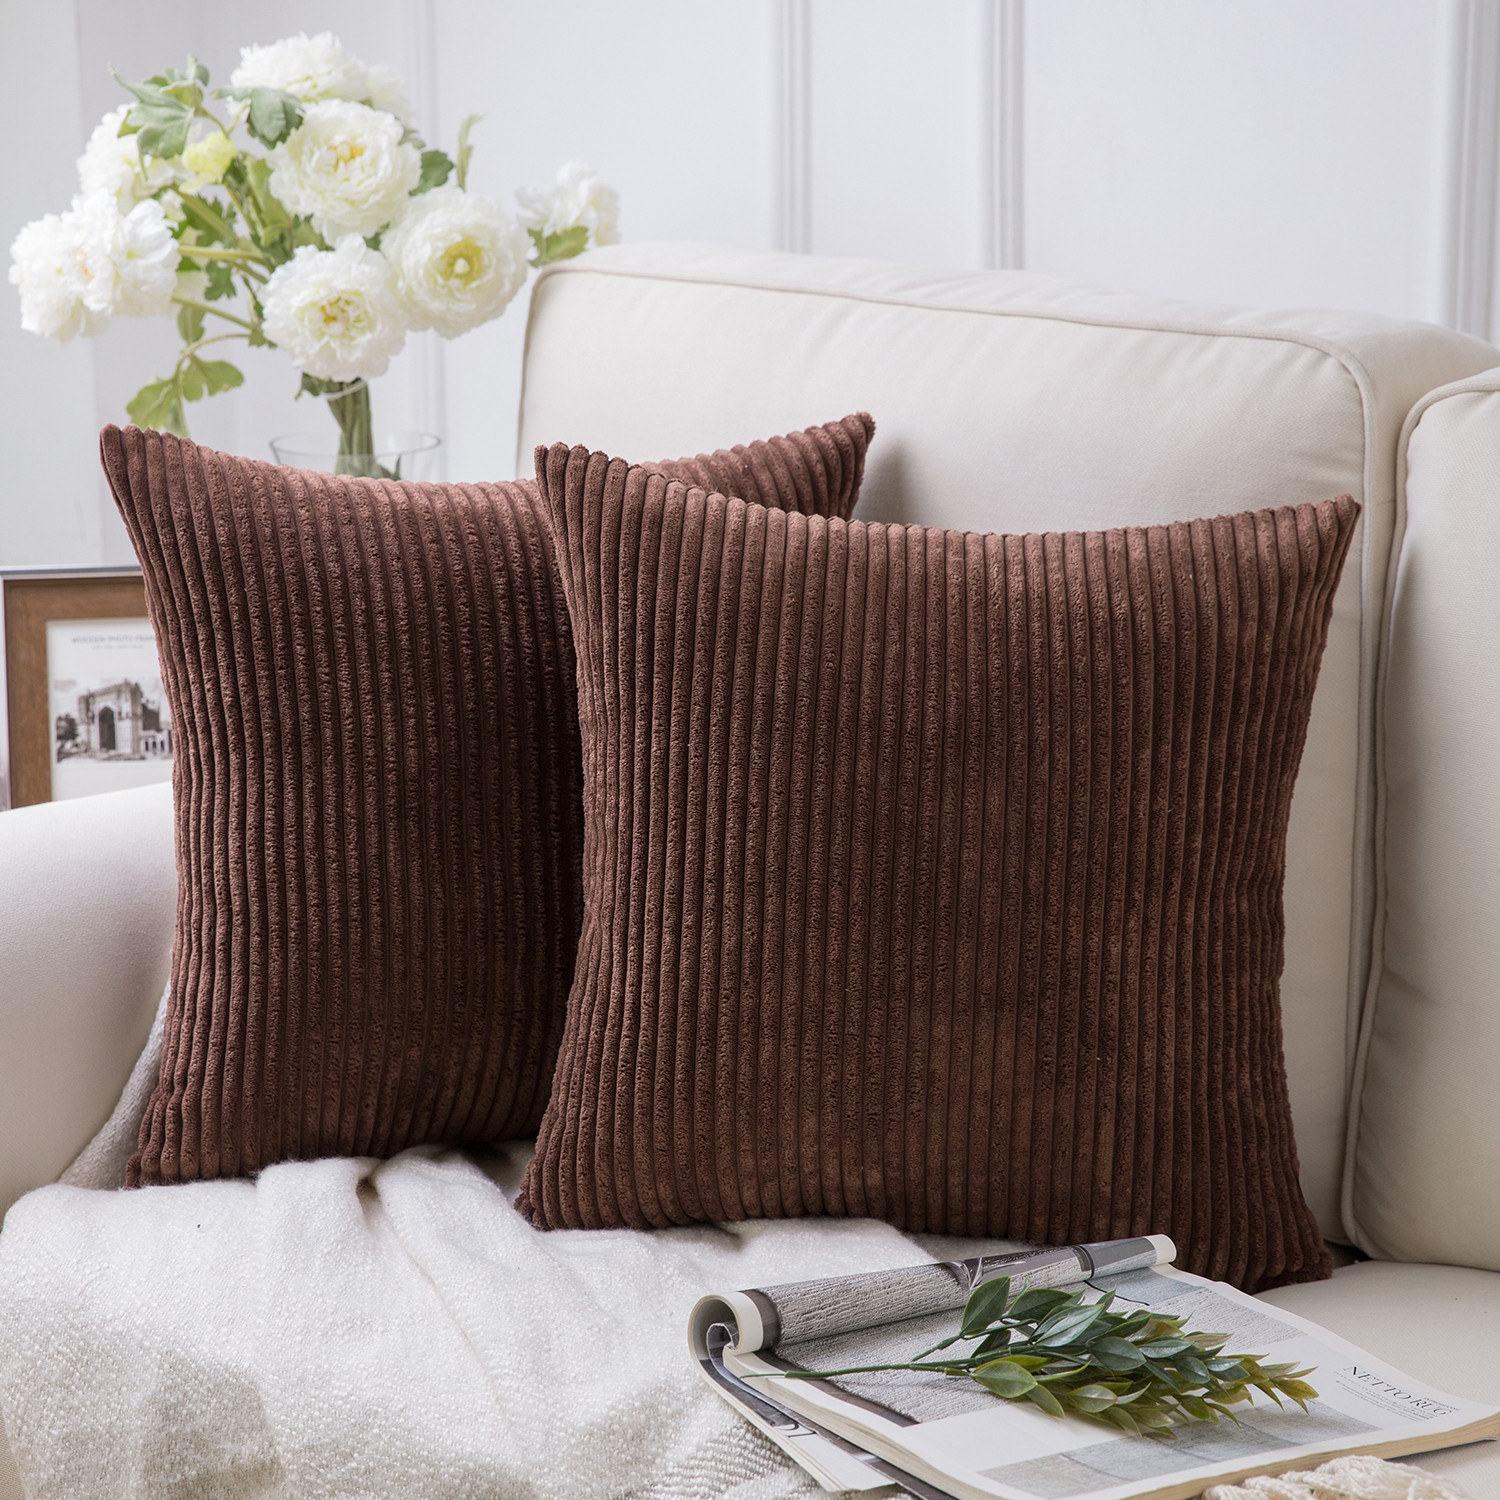 the pillow set in brown displayed on a couch